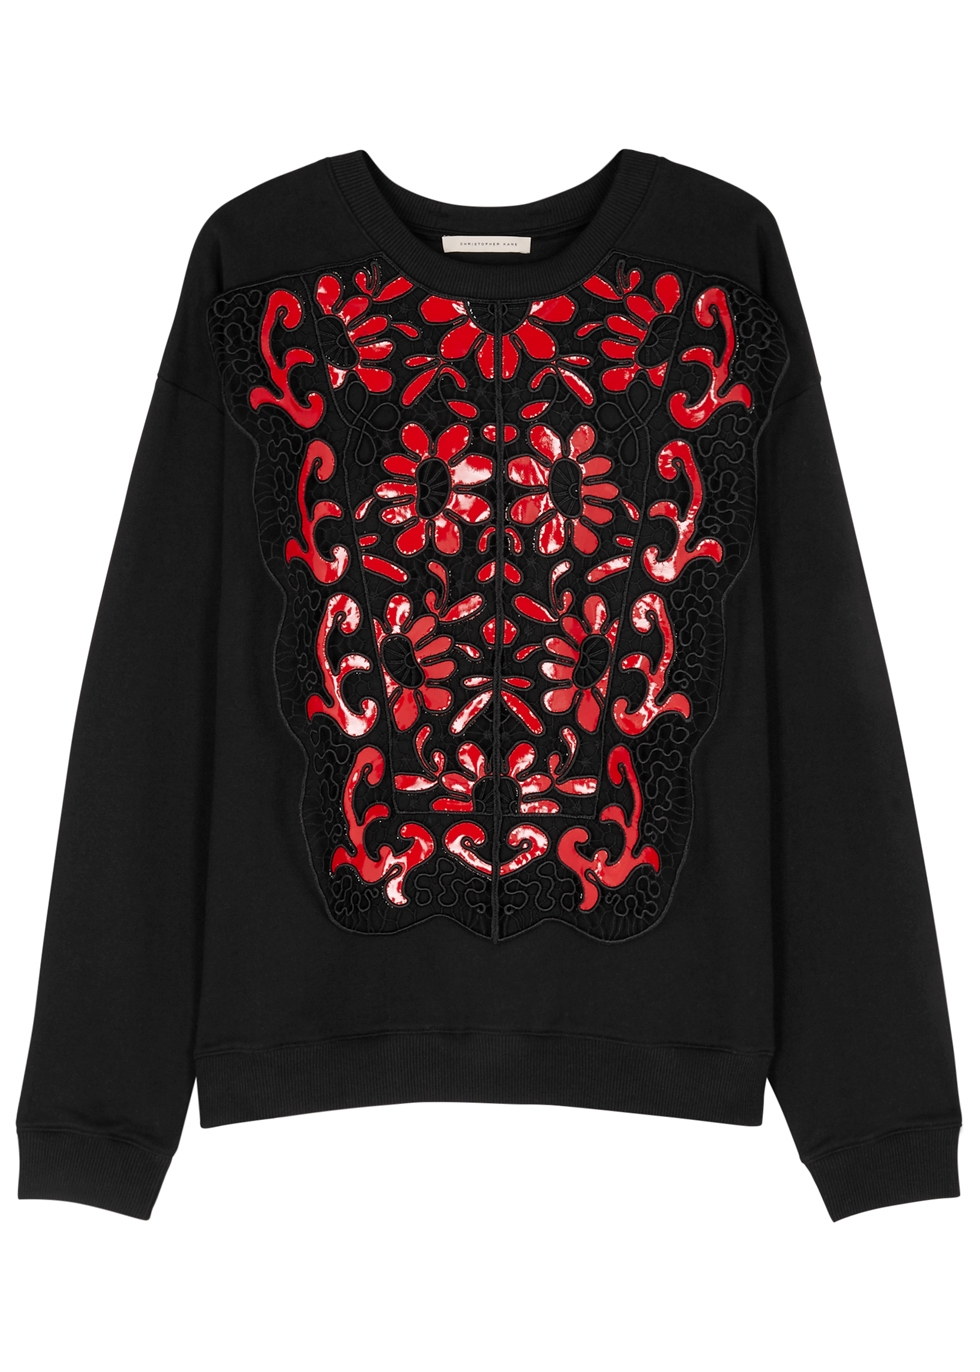 CHRISTOPHER KANE BLACK GUIPURE LACE AND COTTON SWEATSHIRT